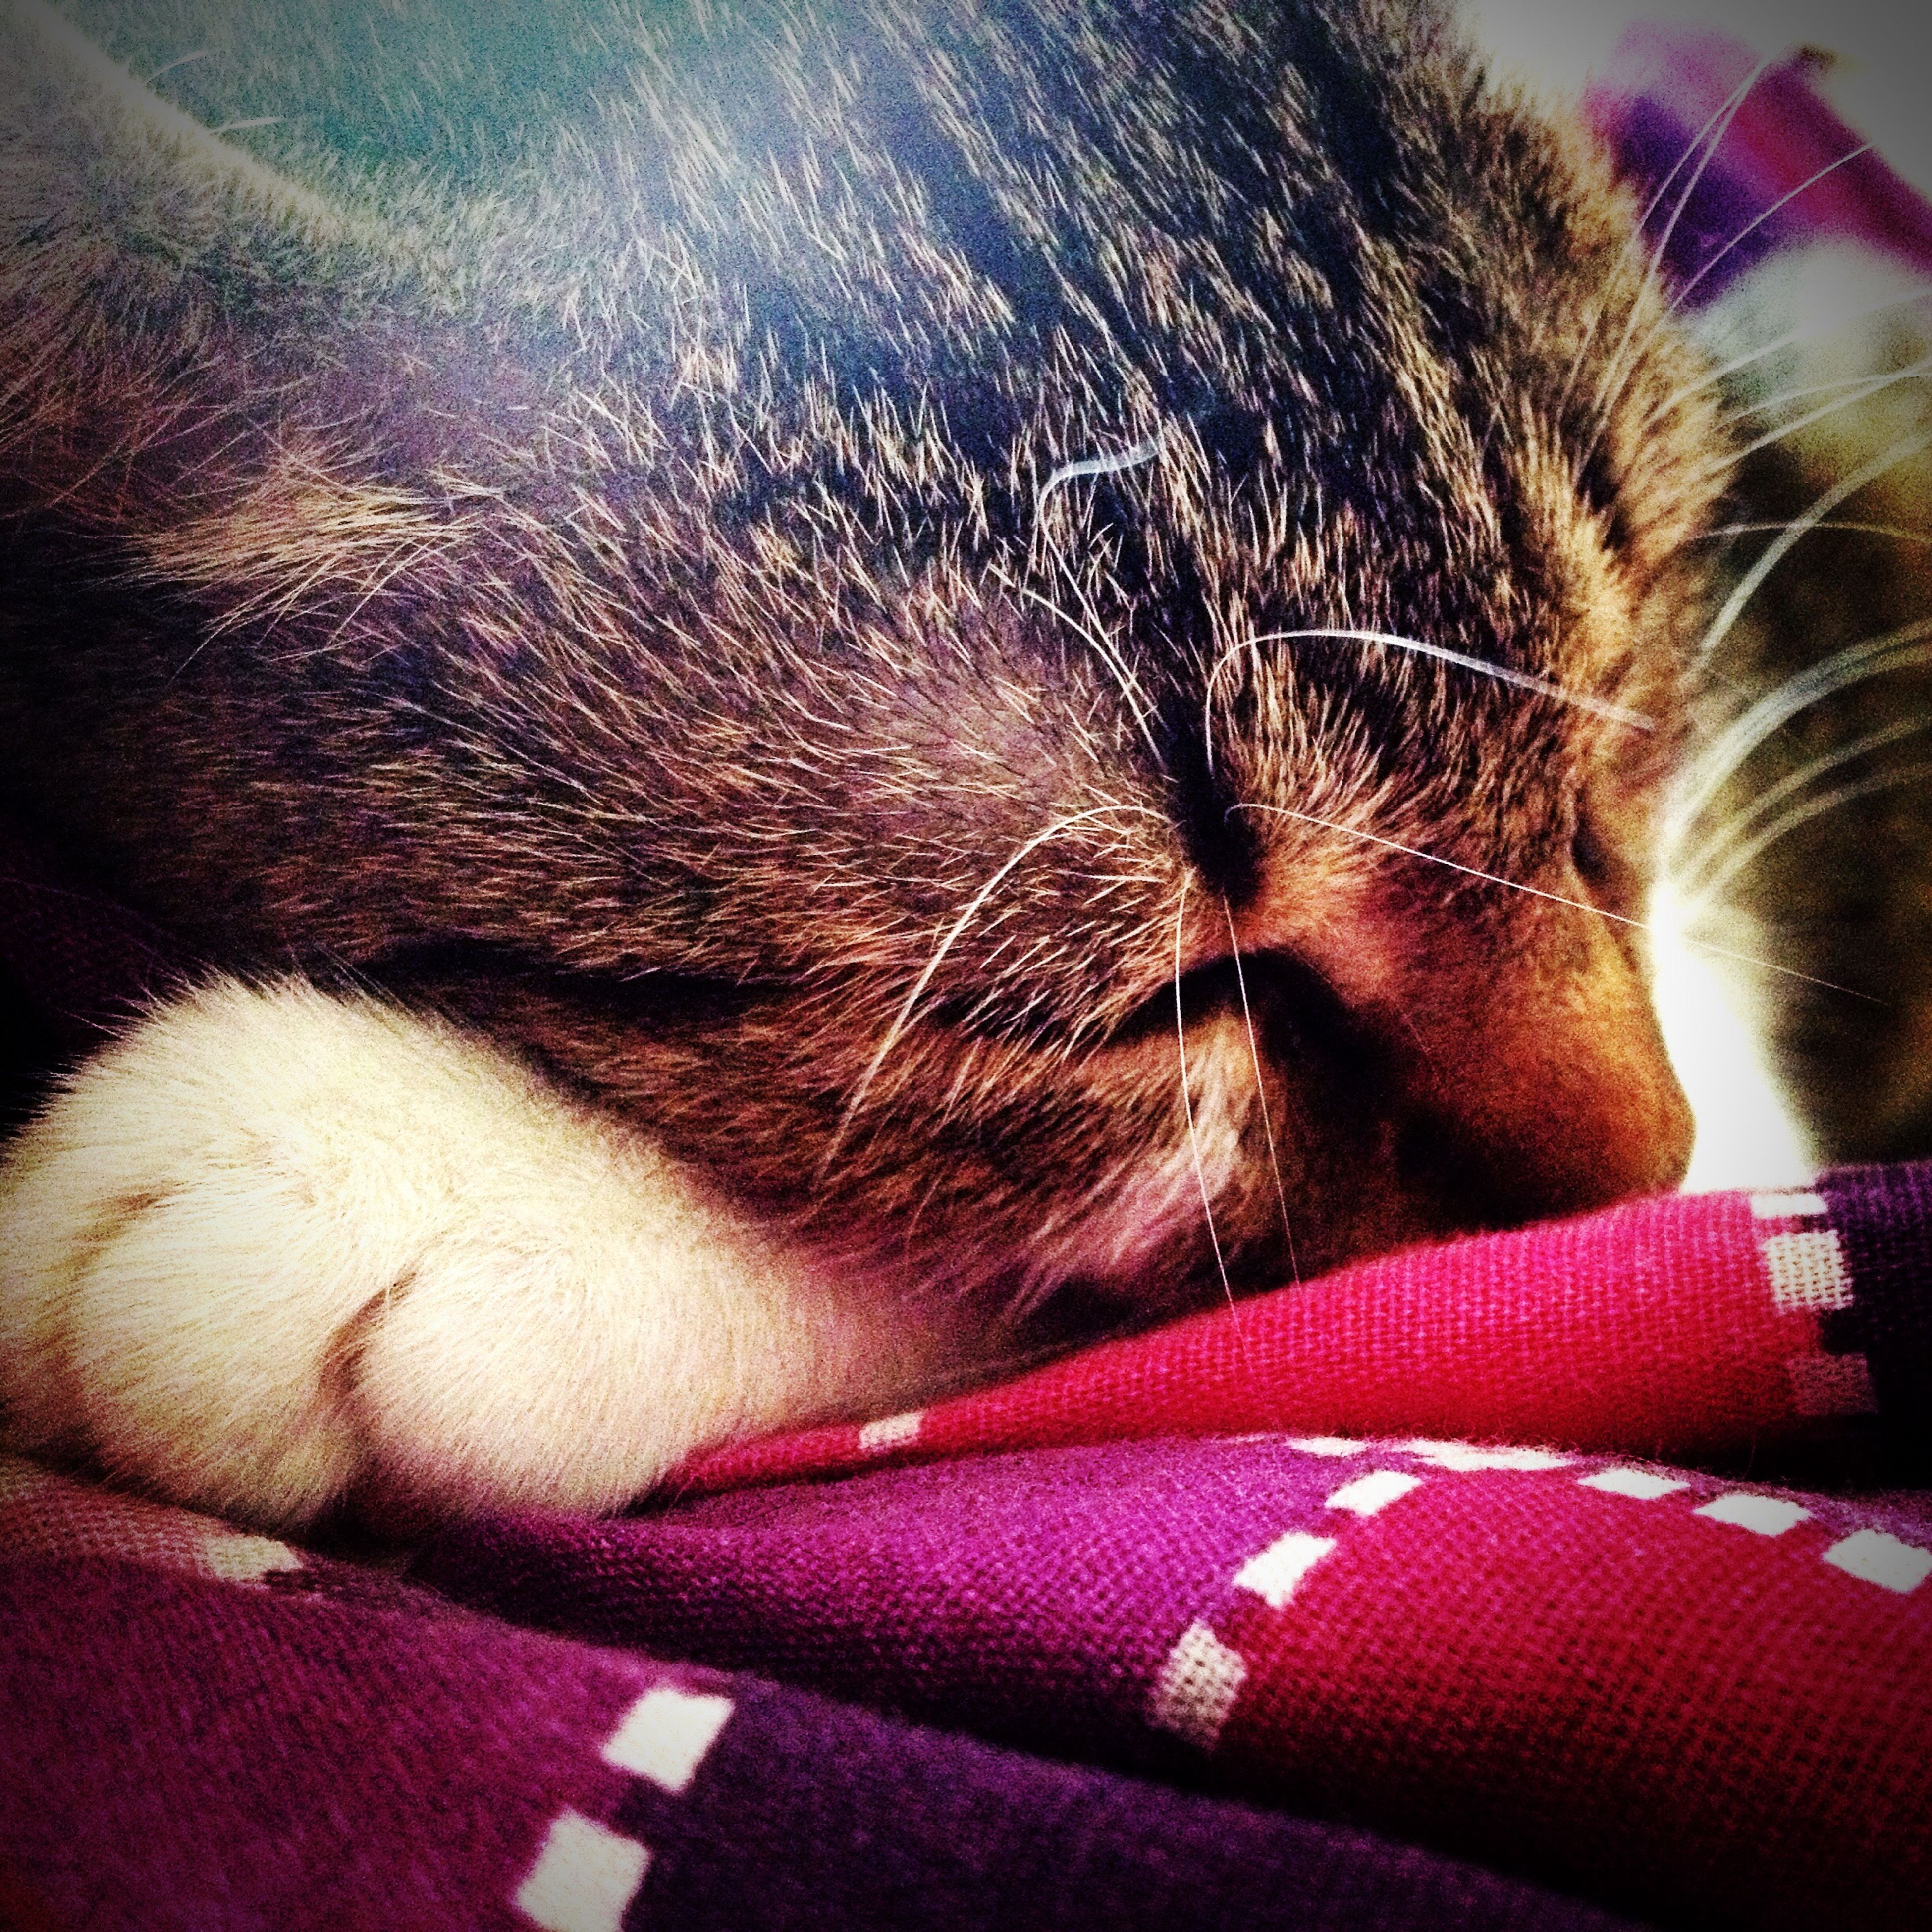 pets, domestic animals, indoors, one animal, mammal, animal themes, domestic cat, close-up, cat, feline, relaxation, whisker, animal body part, bed, sleeping, part of, animal head, home interior, lying down, resting